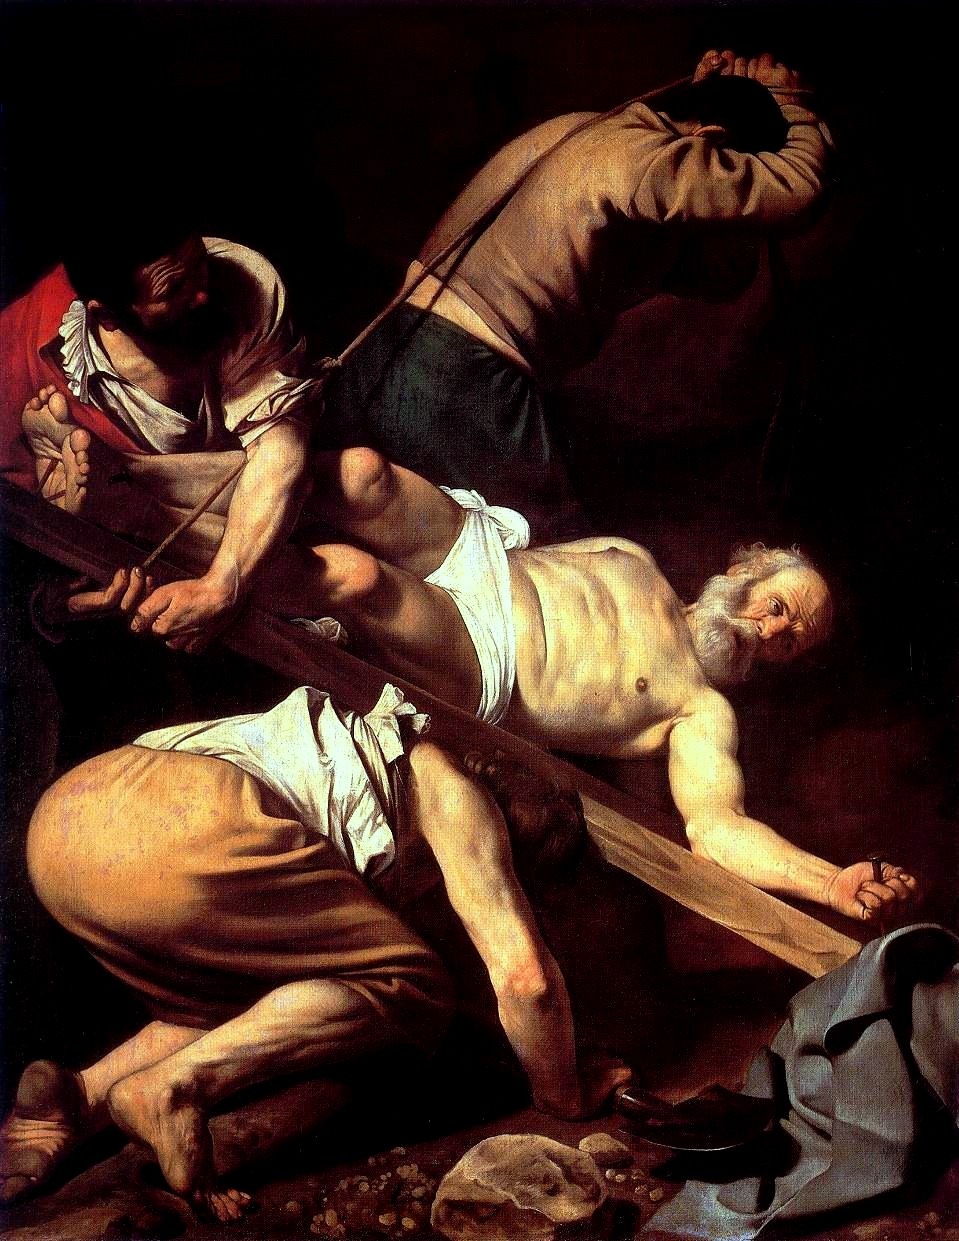 Caravaggio's Baroque paintings include the Martyrdom of Saint Peter in the Church of Santa Maria del Populo in Rome